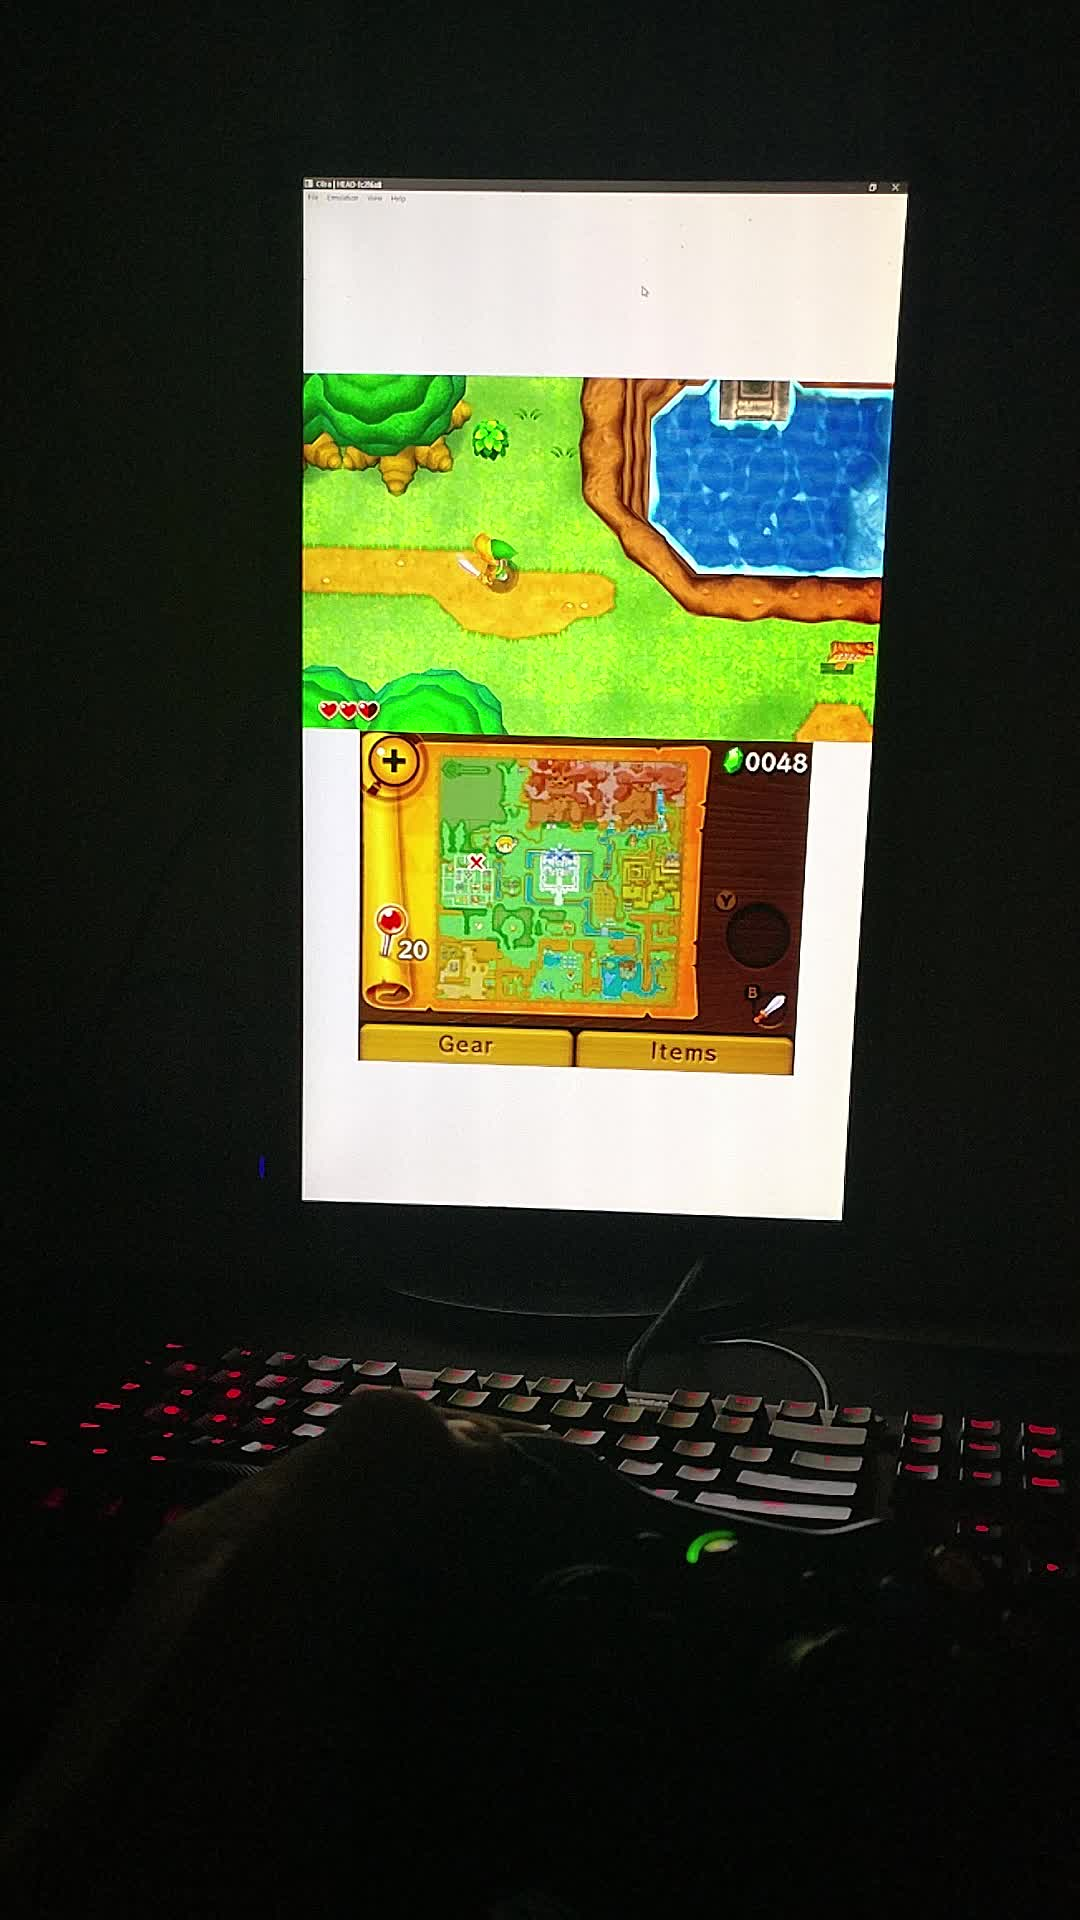 pcmasterrace, Playing a 3DS Game with a Wireless Xbox 360 controller in 60fps - The Power of PC (reddit) GIFs